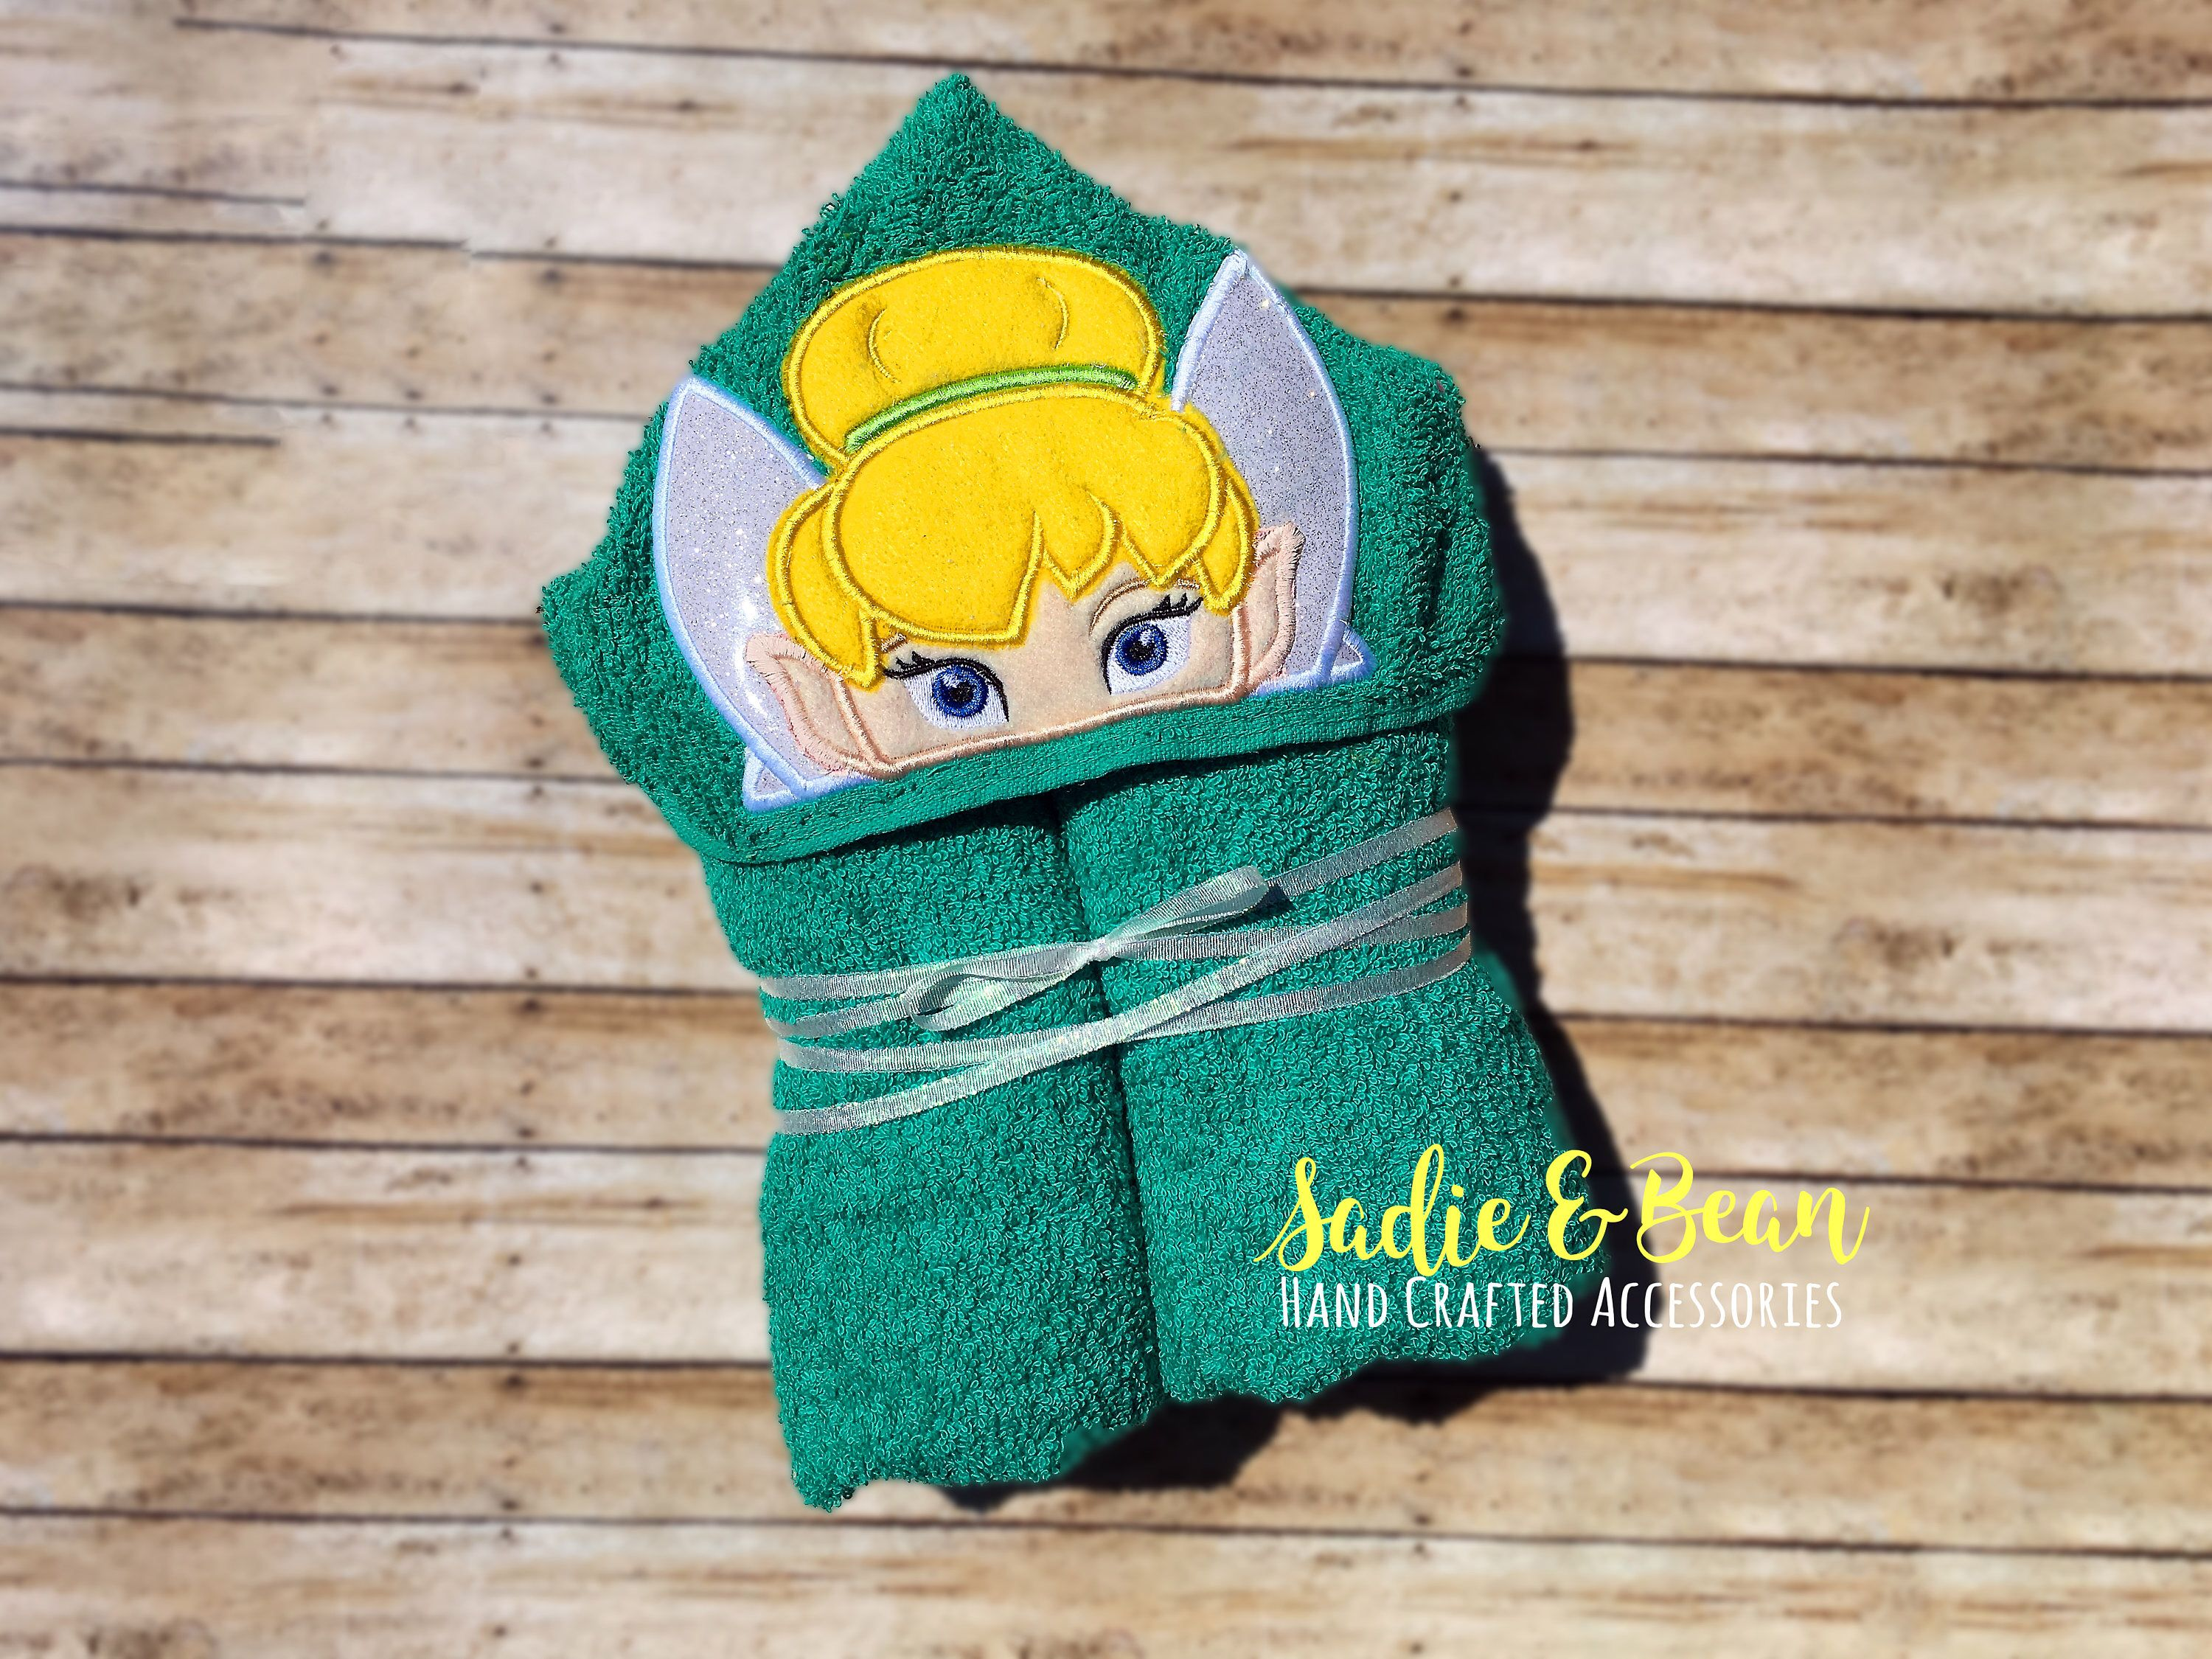 Pin by judith judy ray on baby designs pinterest baby hooded baby hooded towel hooded bath towels baby towel applique towels embroidered towels kids beach towels times beach personalized baby gifts great gifts negle Choice Image